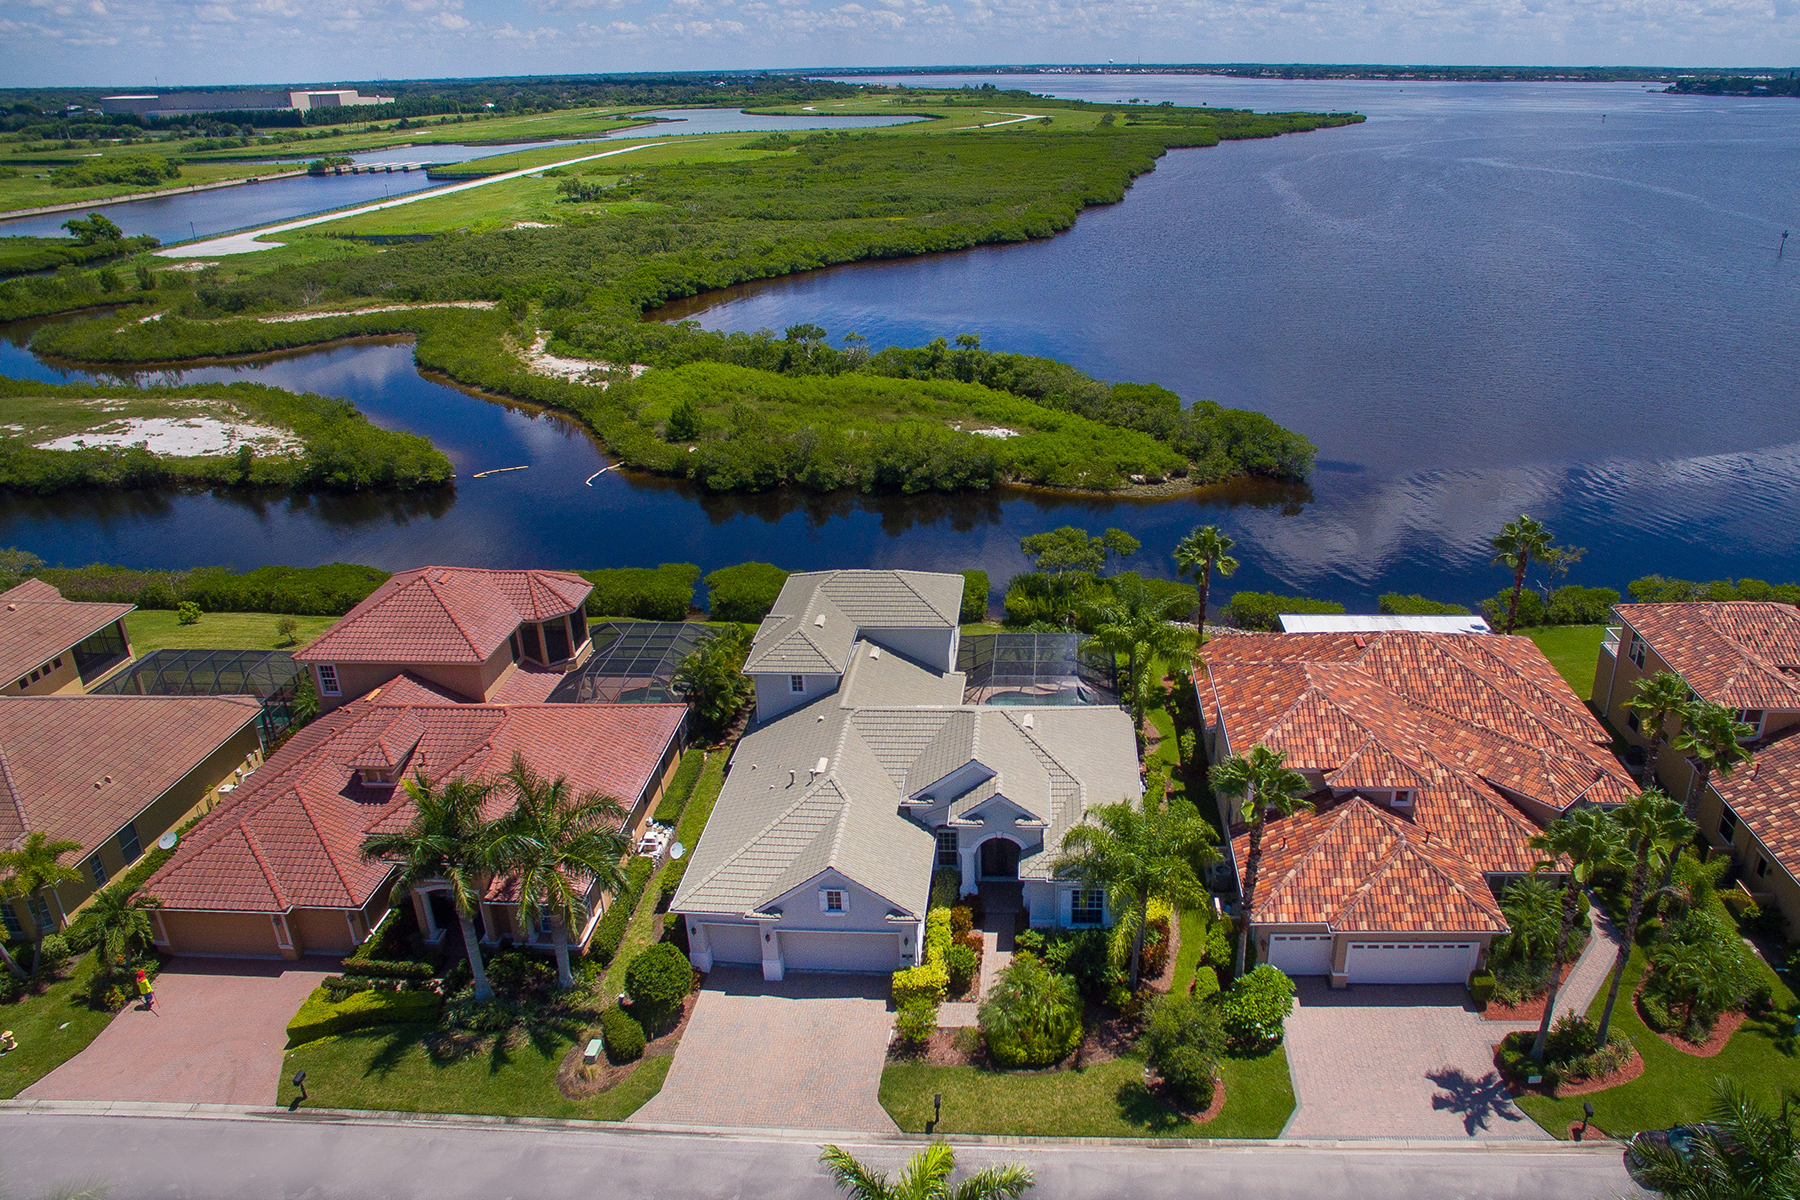 Single Family Home for Sale at PENINSULA AT RIVIERA DUNES 118 12th Ave E Palmetto, Florida, 34221 United States